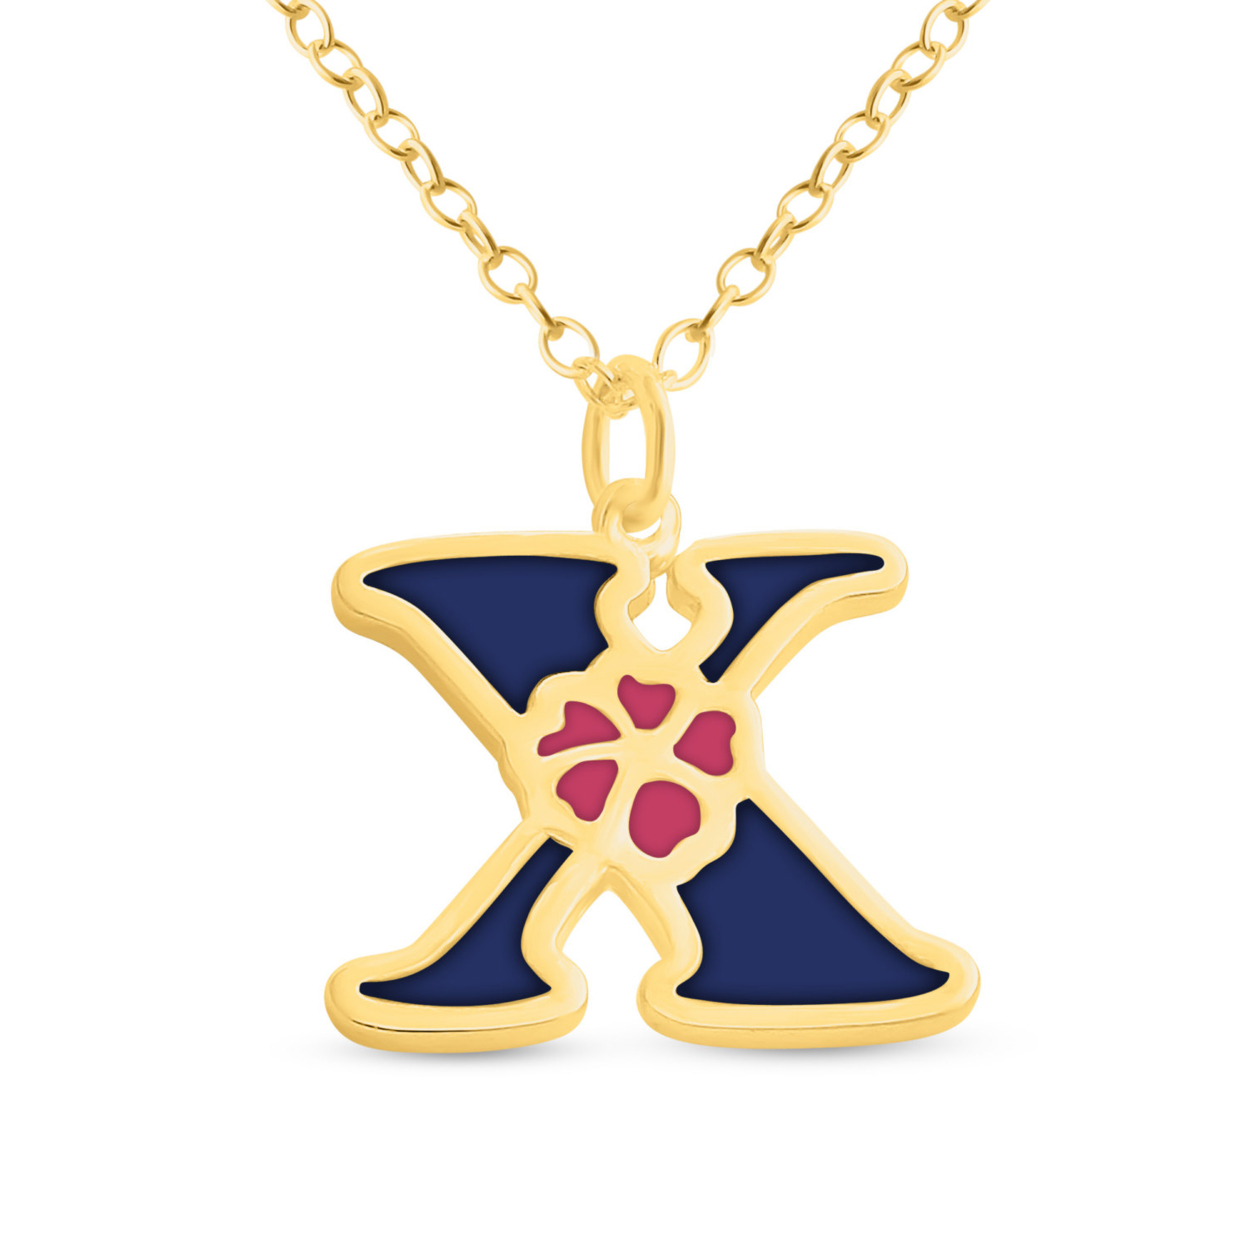 Blue Enameled Initial Letter X With Flower Multi Colors Charm Pendant Necklace #14k Gold Plated Over 925 Sterling Silver #azaggi N0854g_x_v1 12 Child